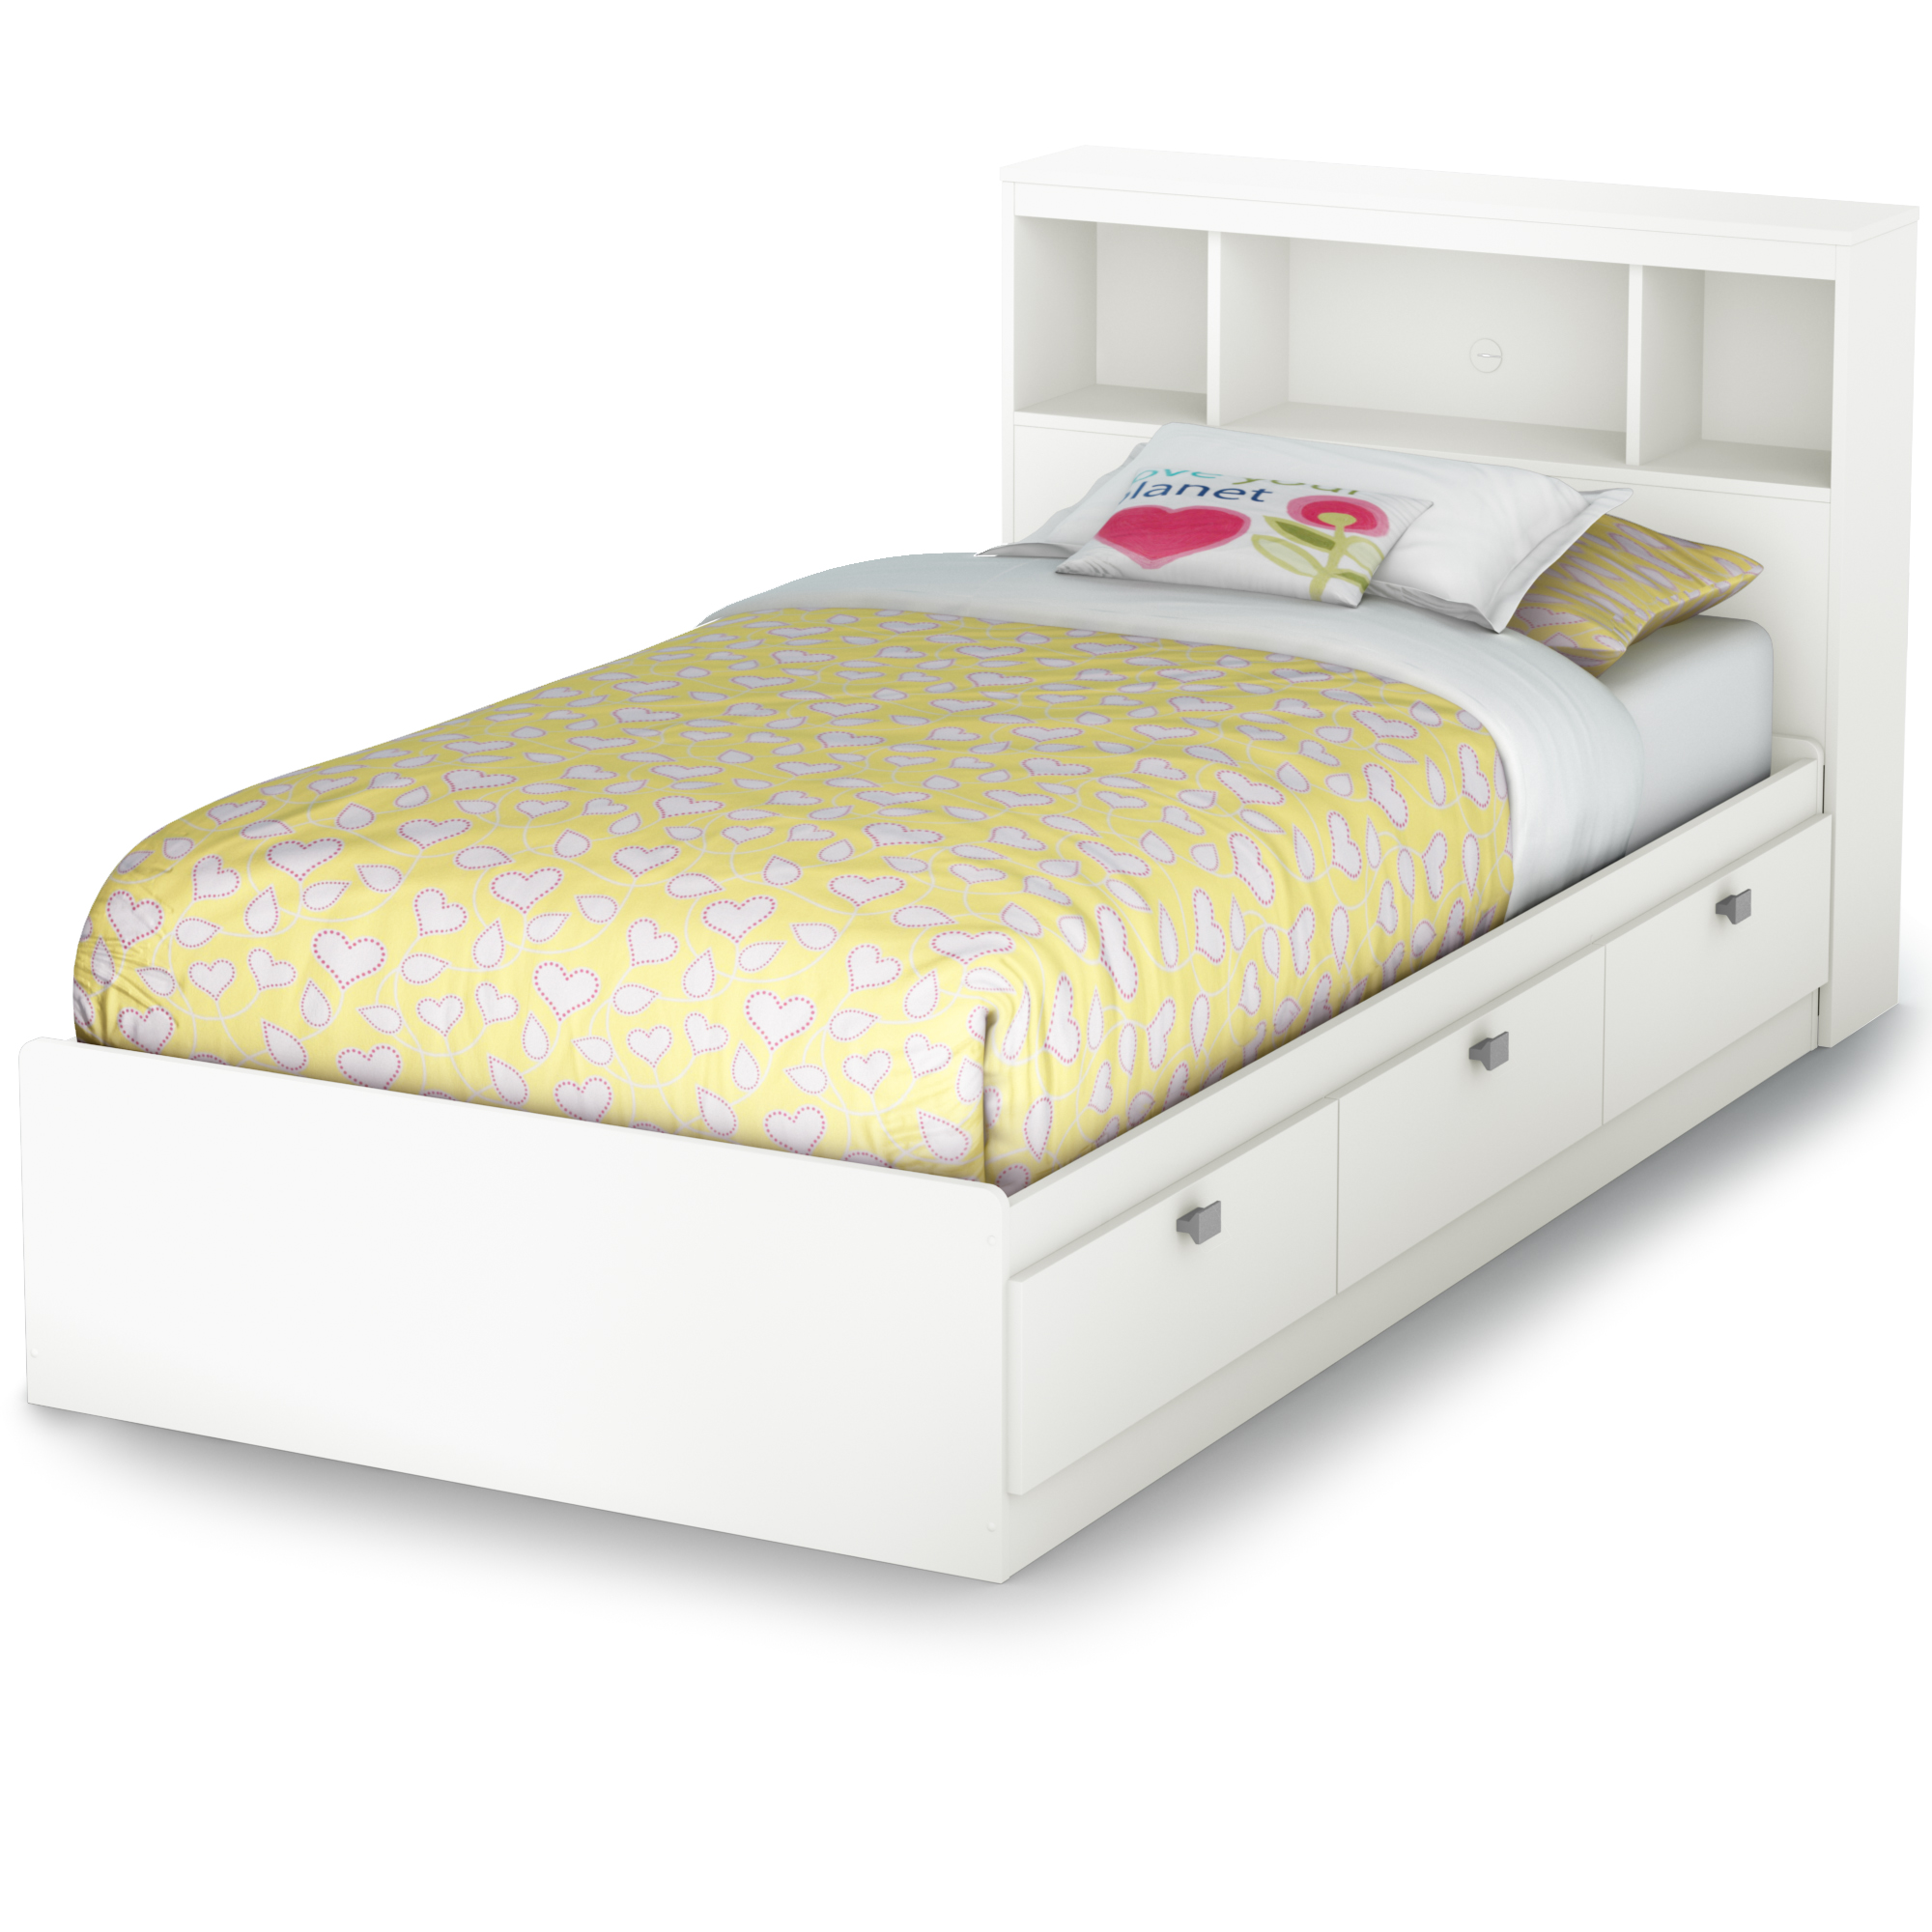 """south shore spark twin 39"""" mates bed with 3 drawers, multiple"""